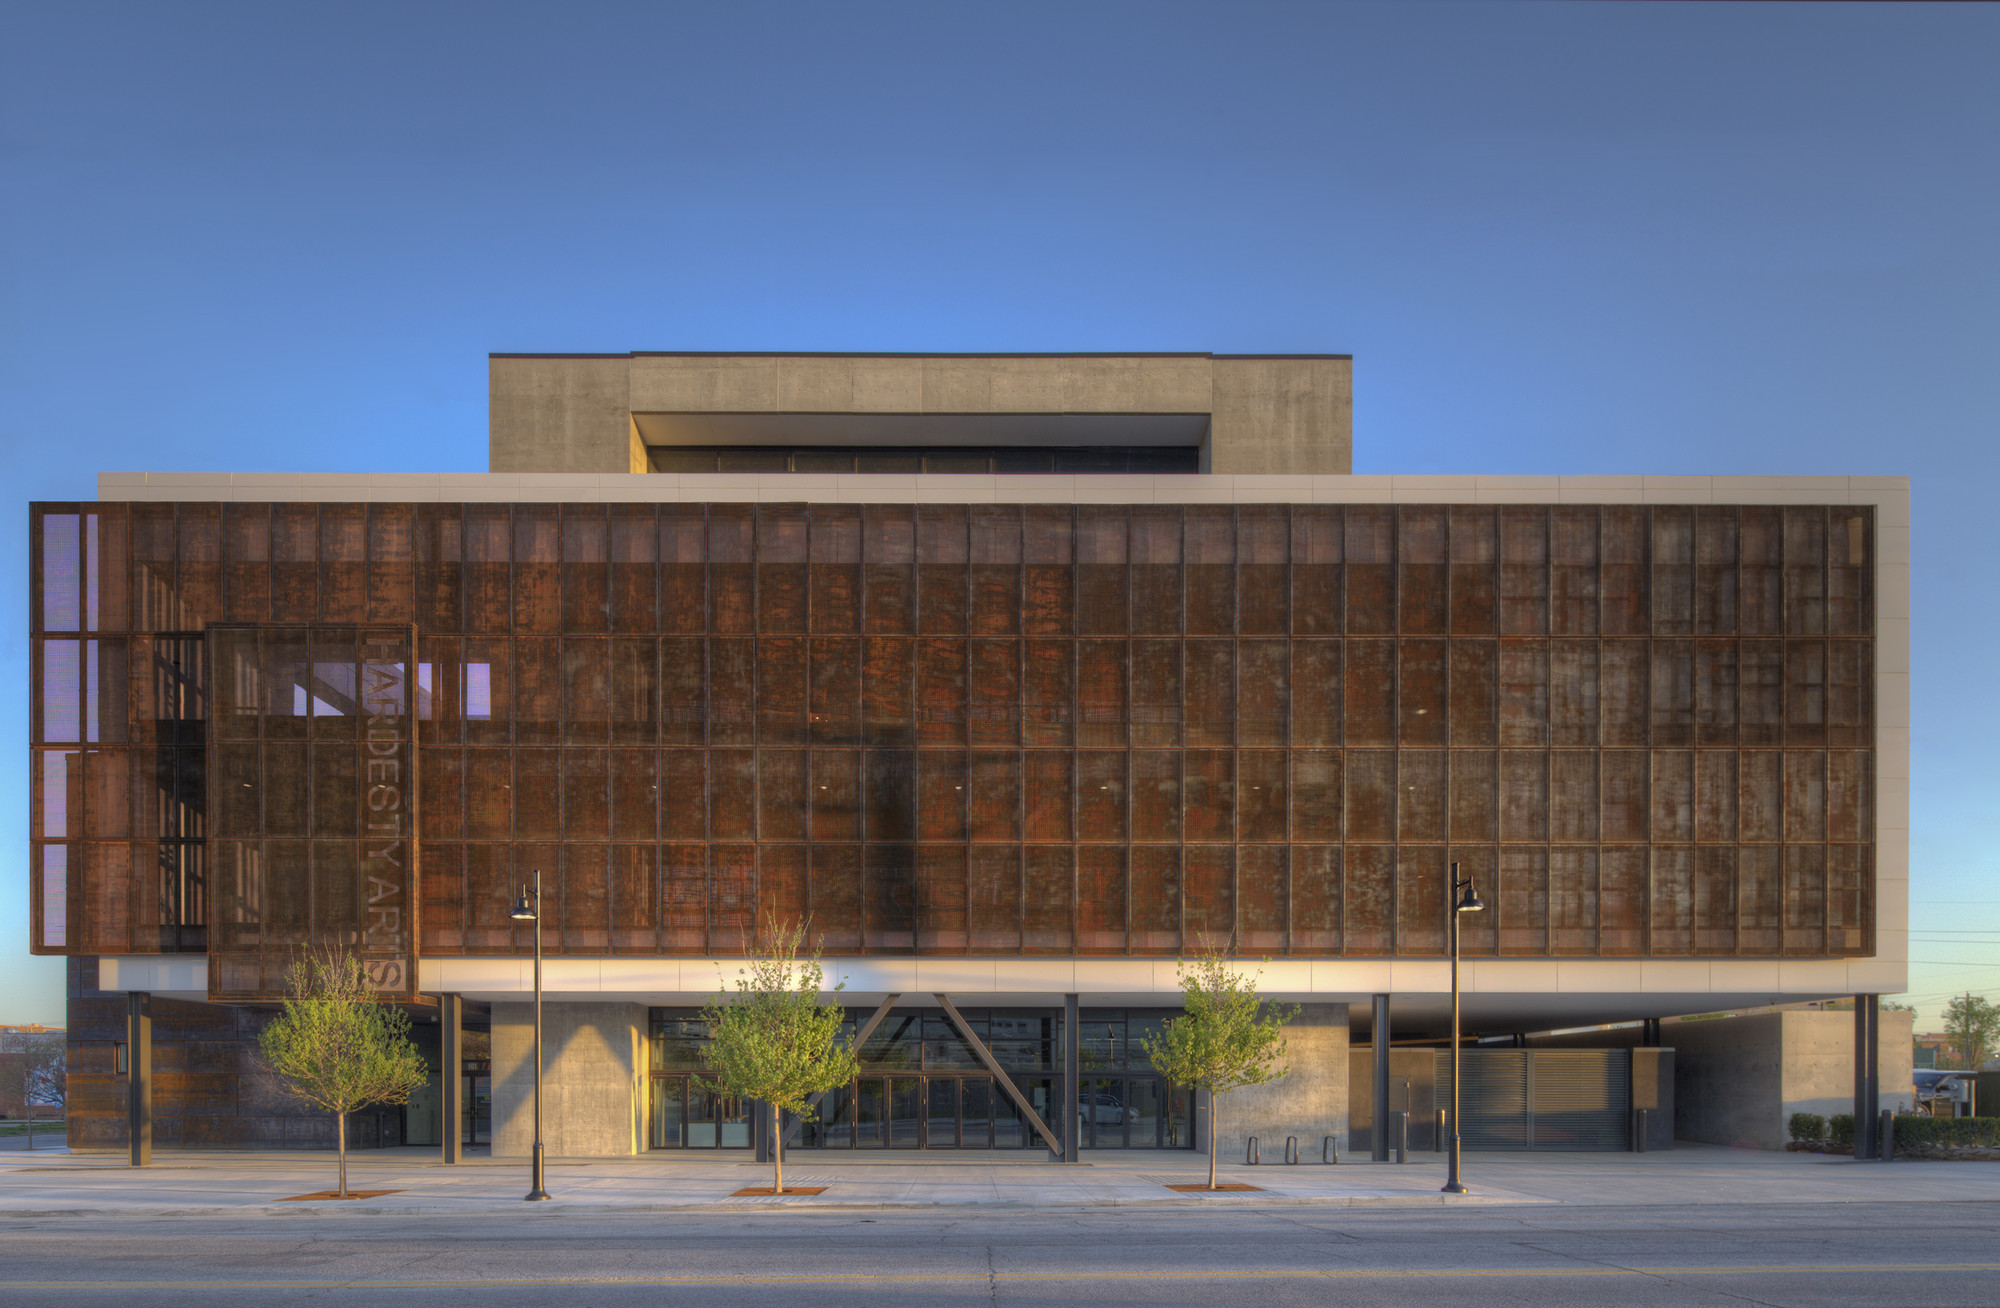 Hardesty Arts Center / Selser Schaefer Architects, © Ralph Cole Photography